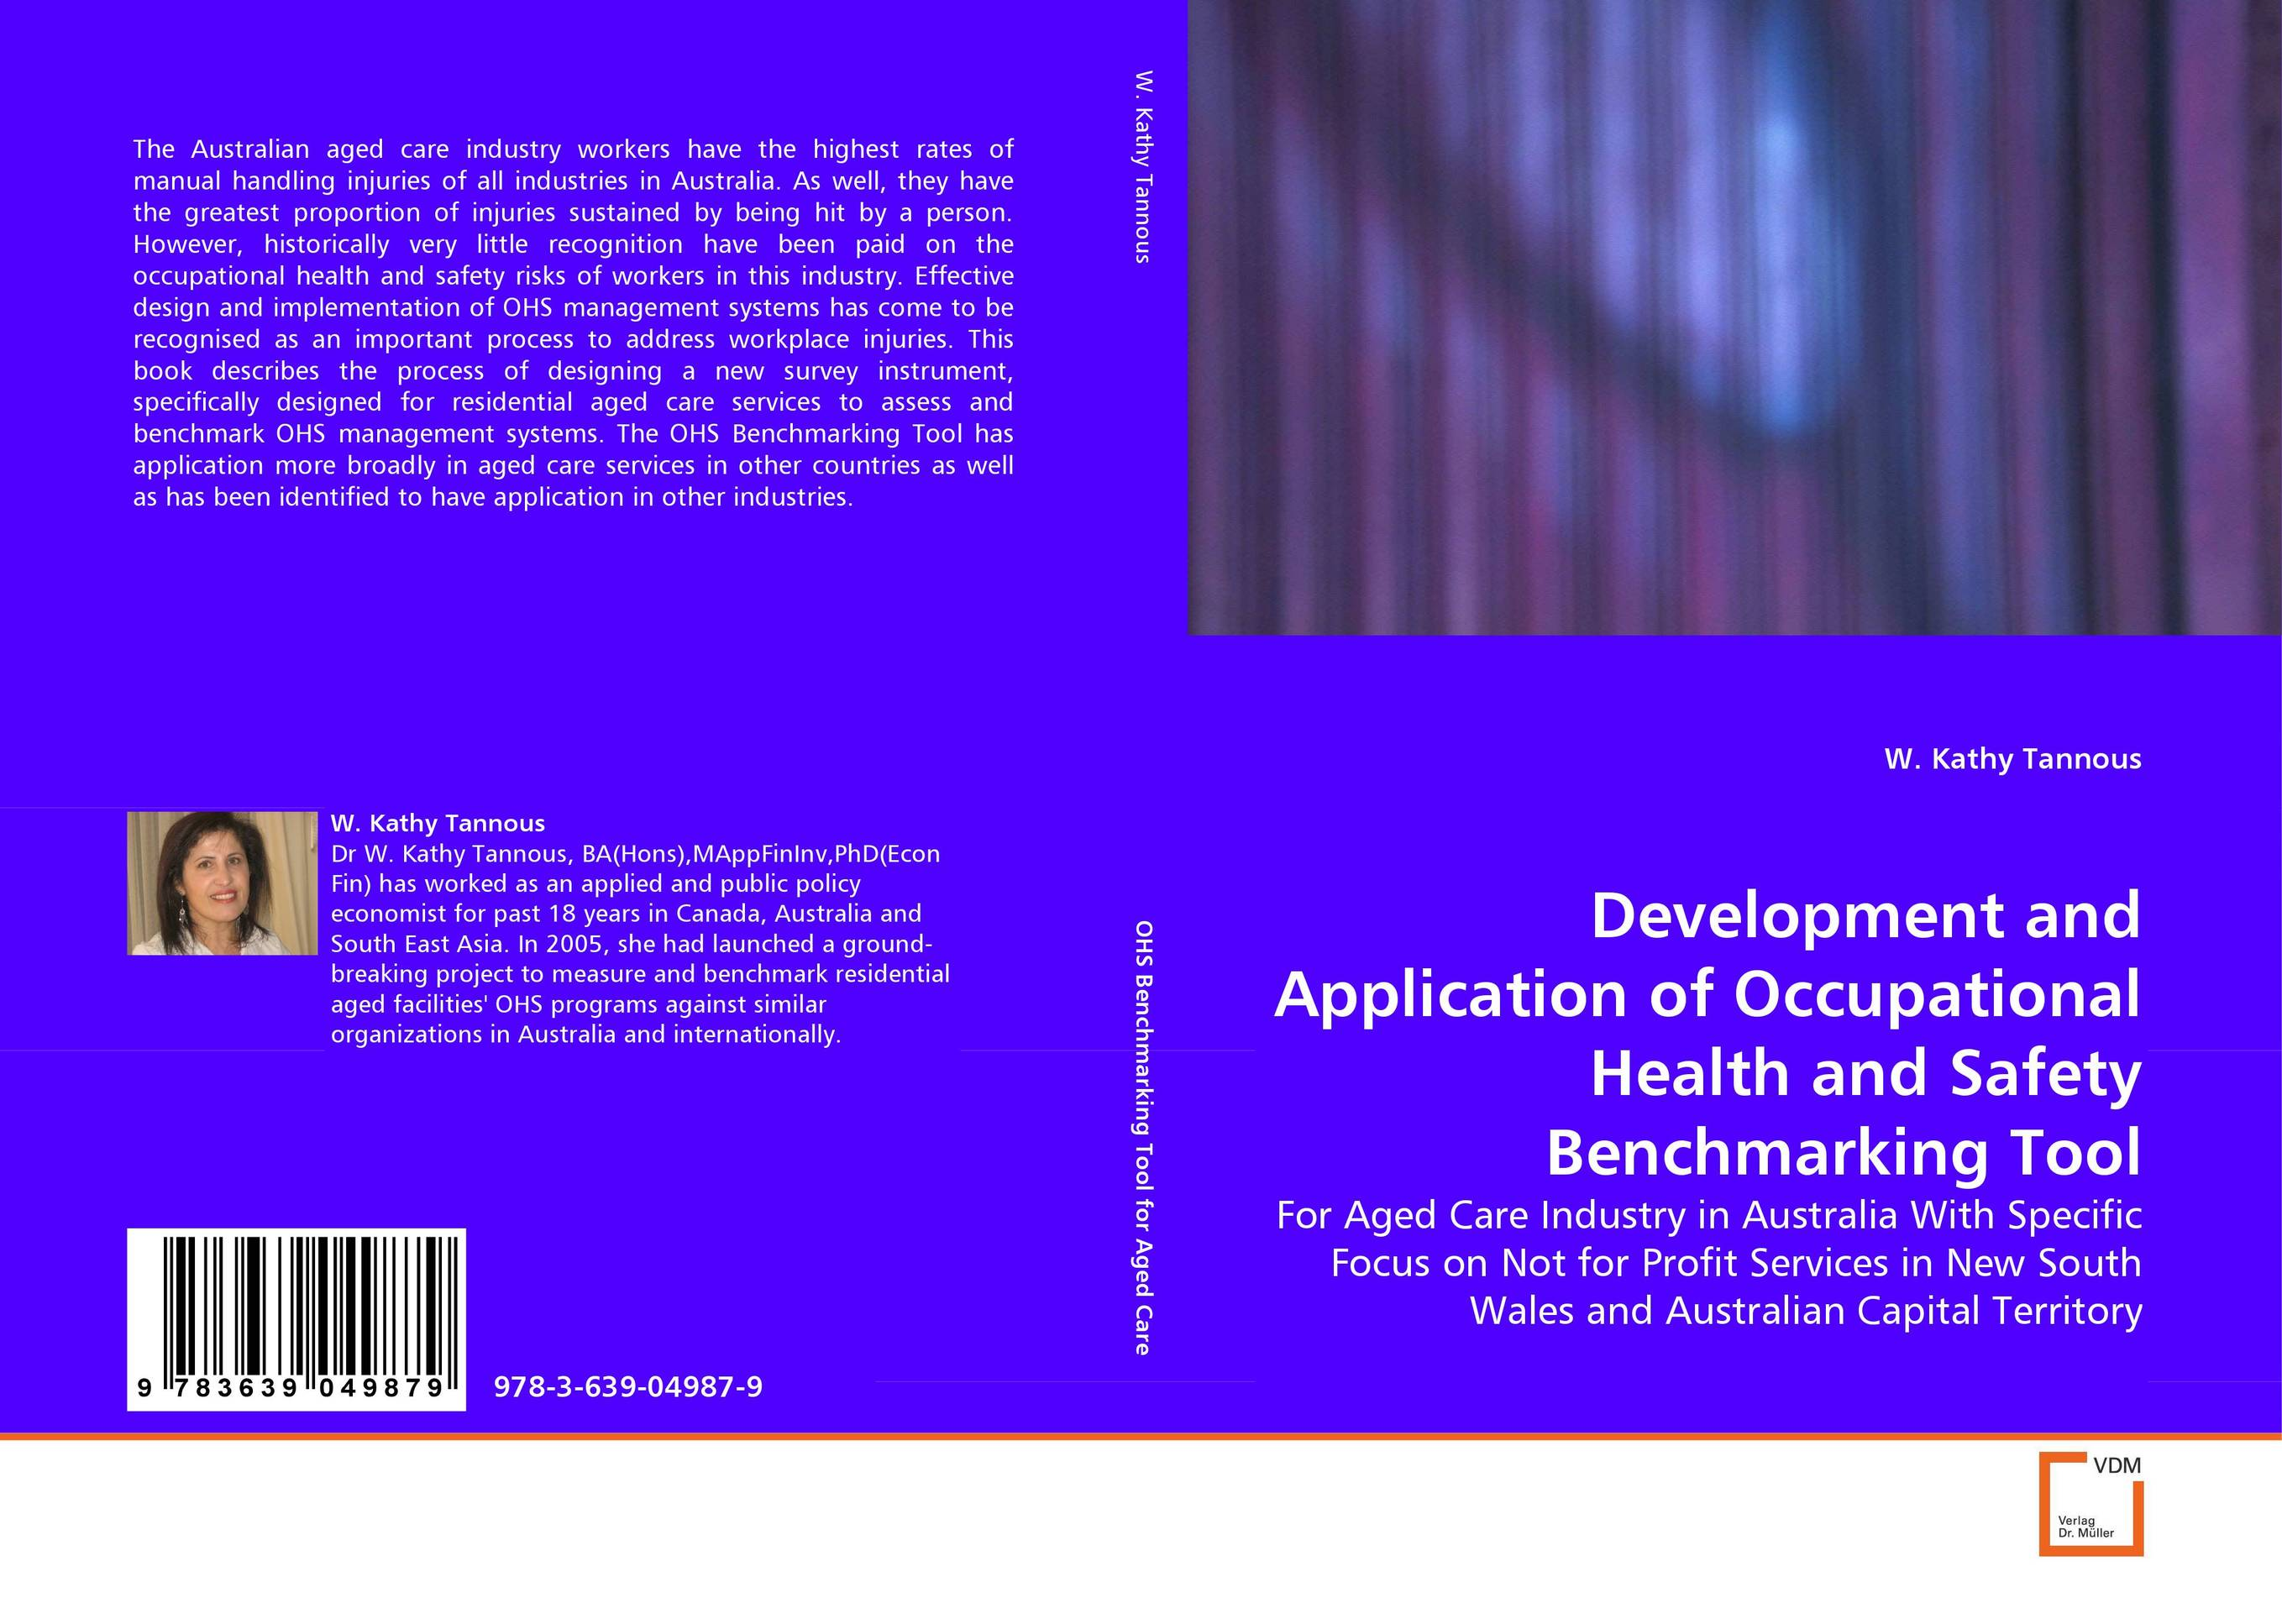 Development and Application of Occupational Health and Safety Benchmarking Tool o fredholm loss prevention and safety promotion in the process industries